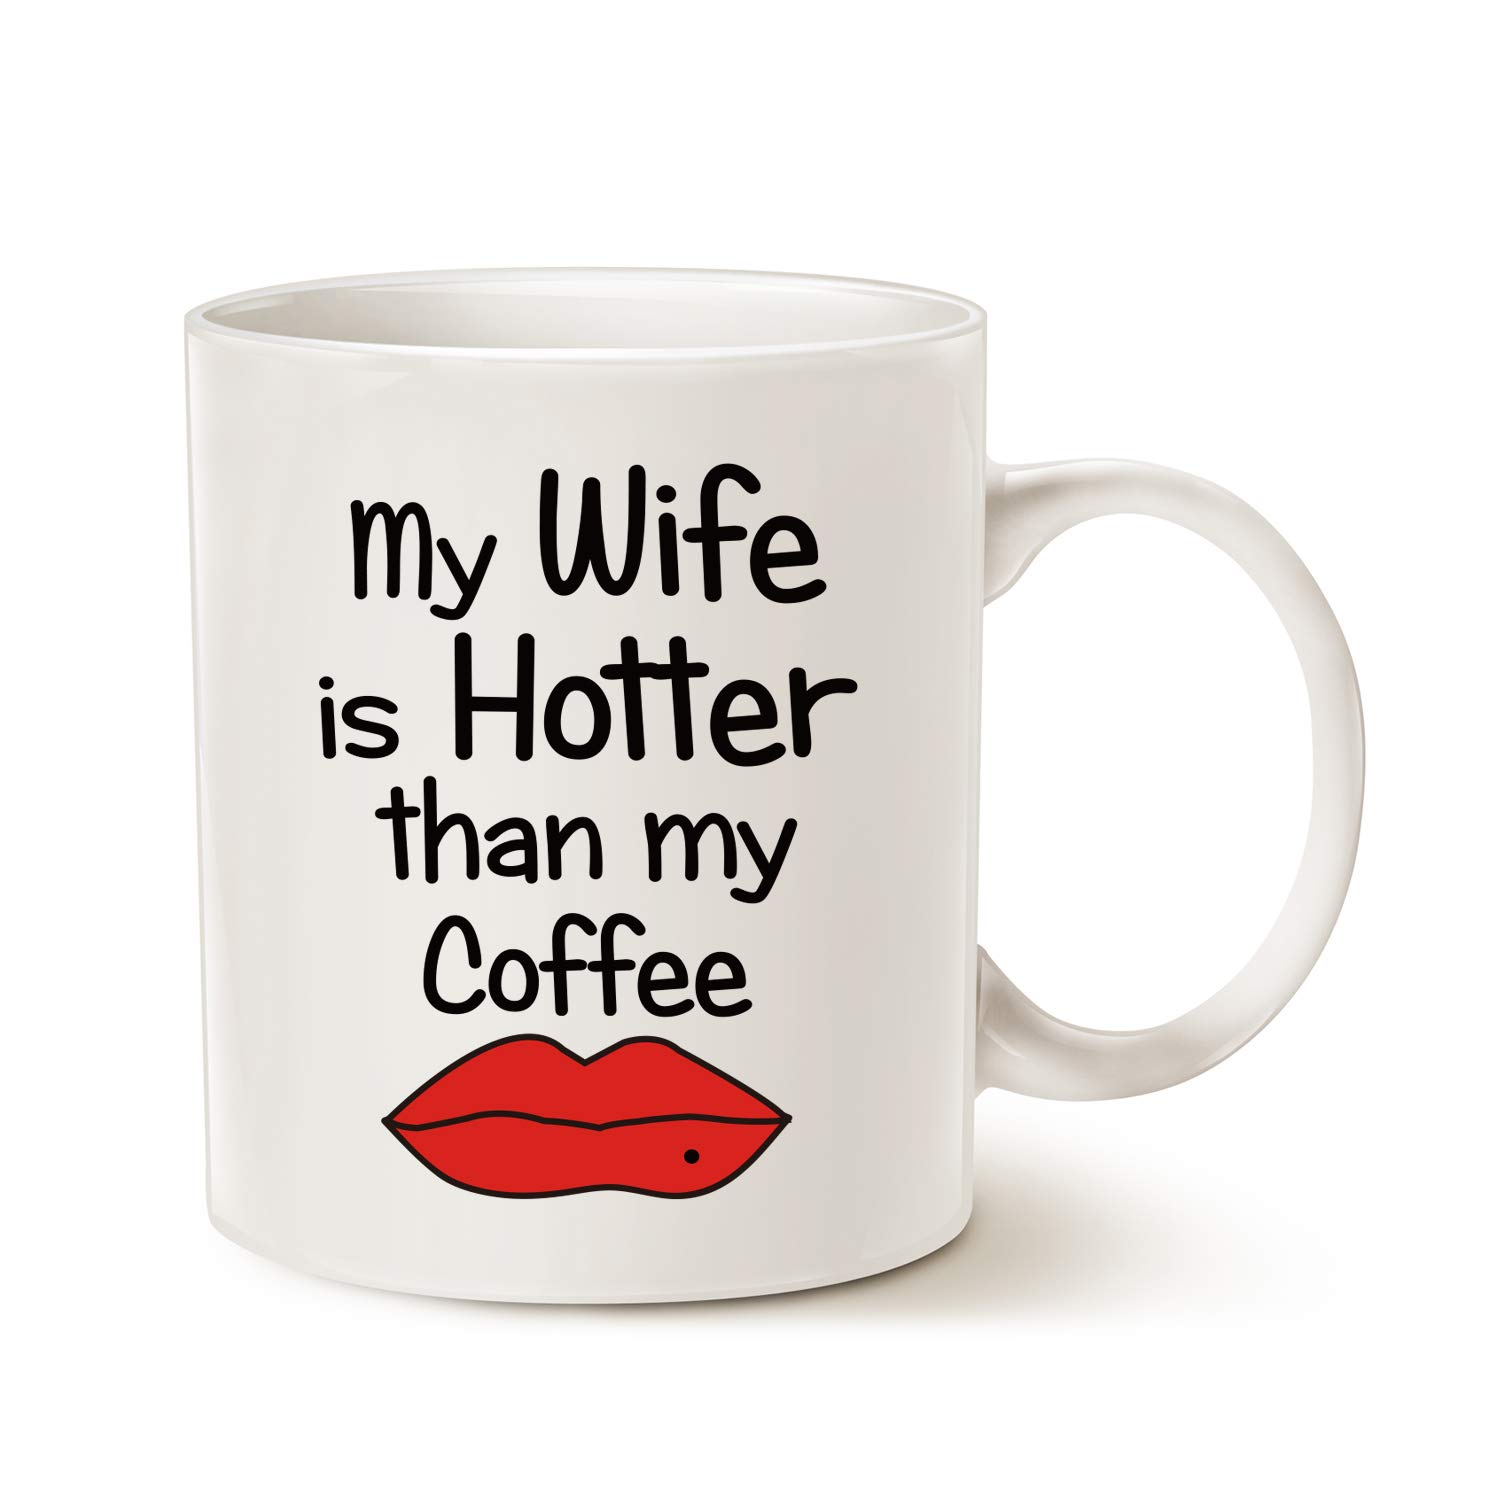 Wife Christmas Gifts.Mauag Valentines Day Funny Quote Coffee Mug For Wife Christmas Gifts My Wife Is Hotter Than My Coffee Love Lips Cup White 11 Oz